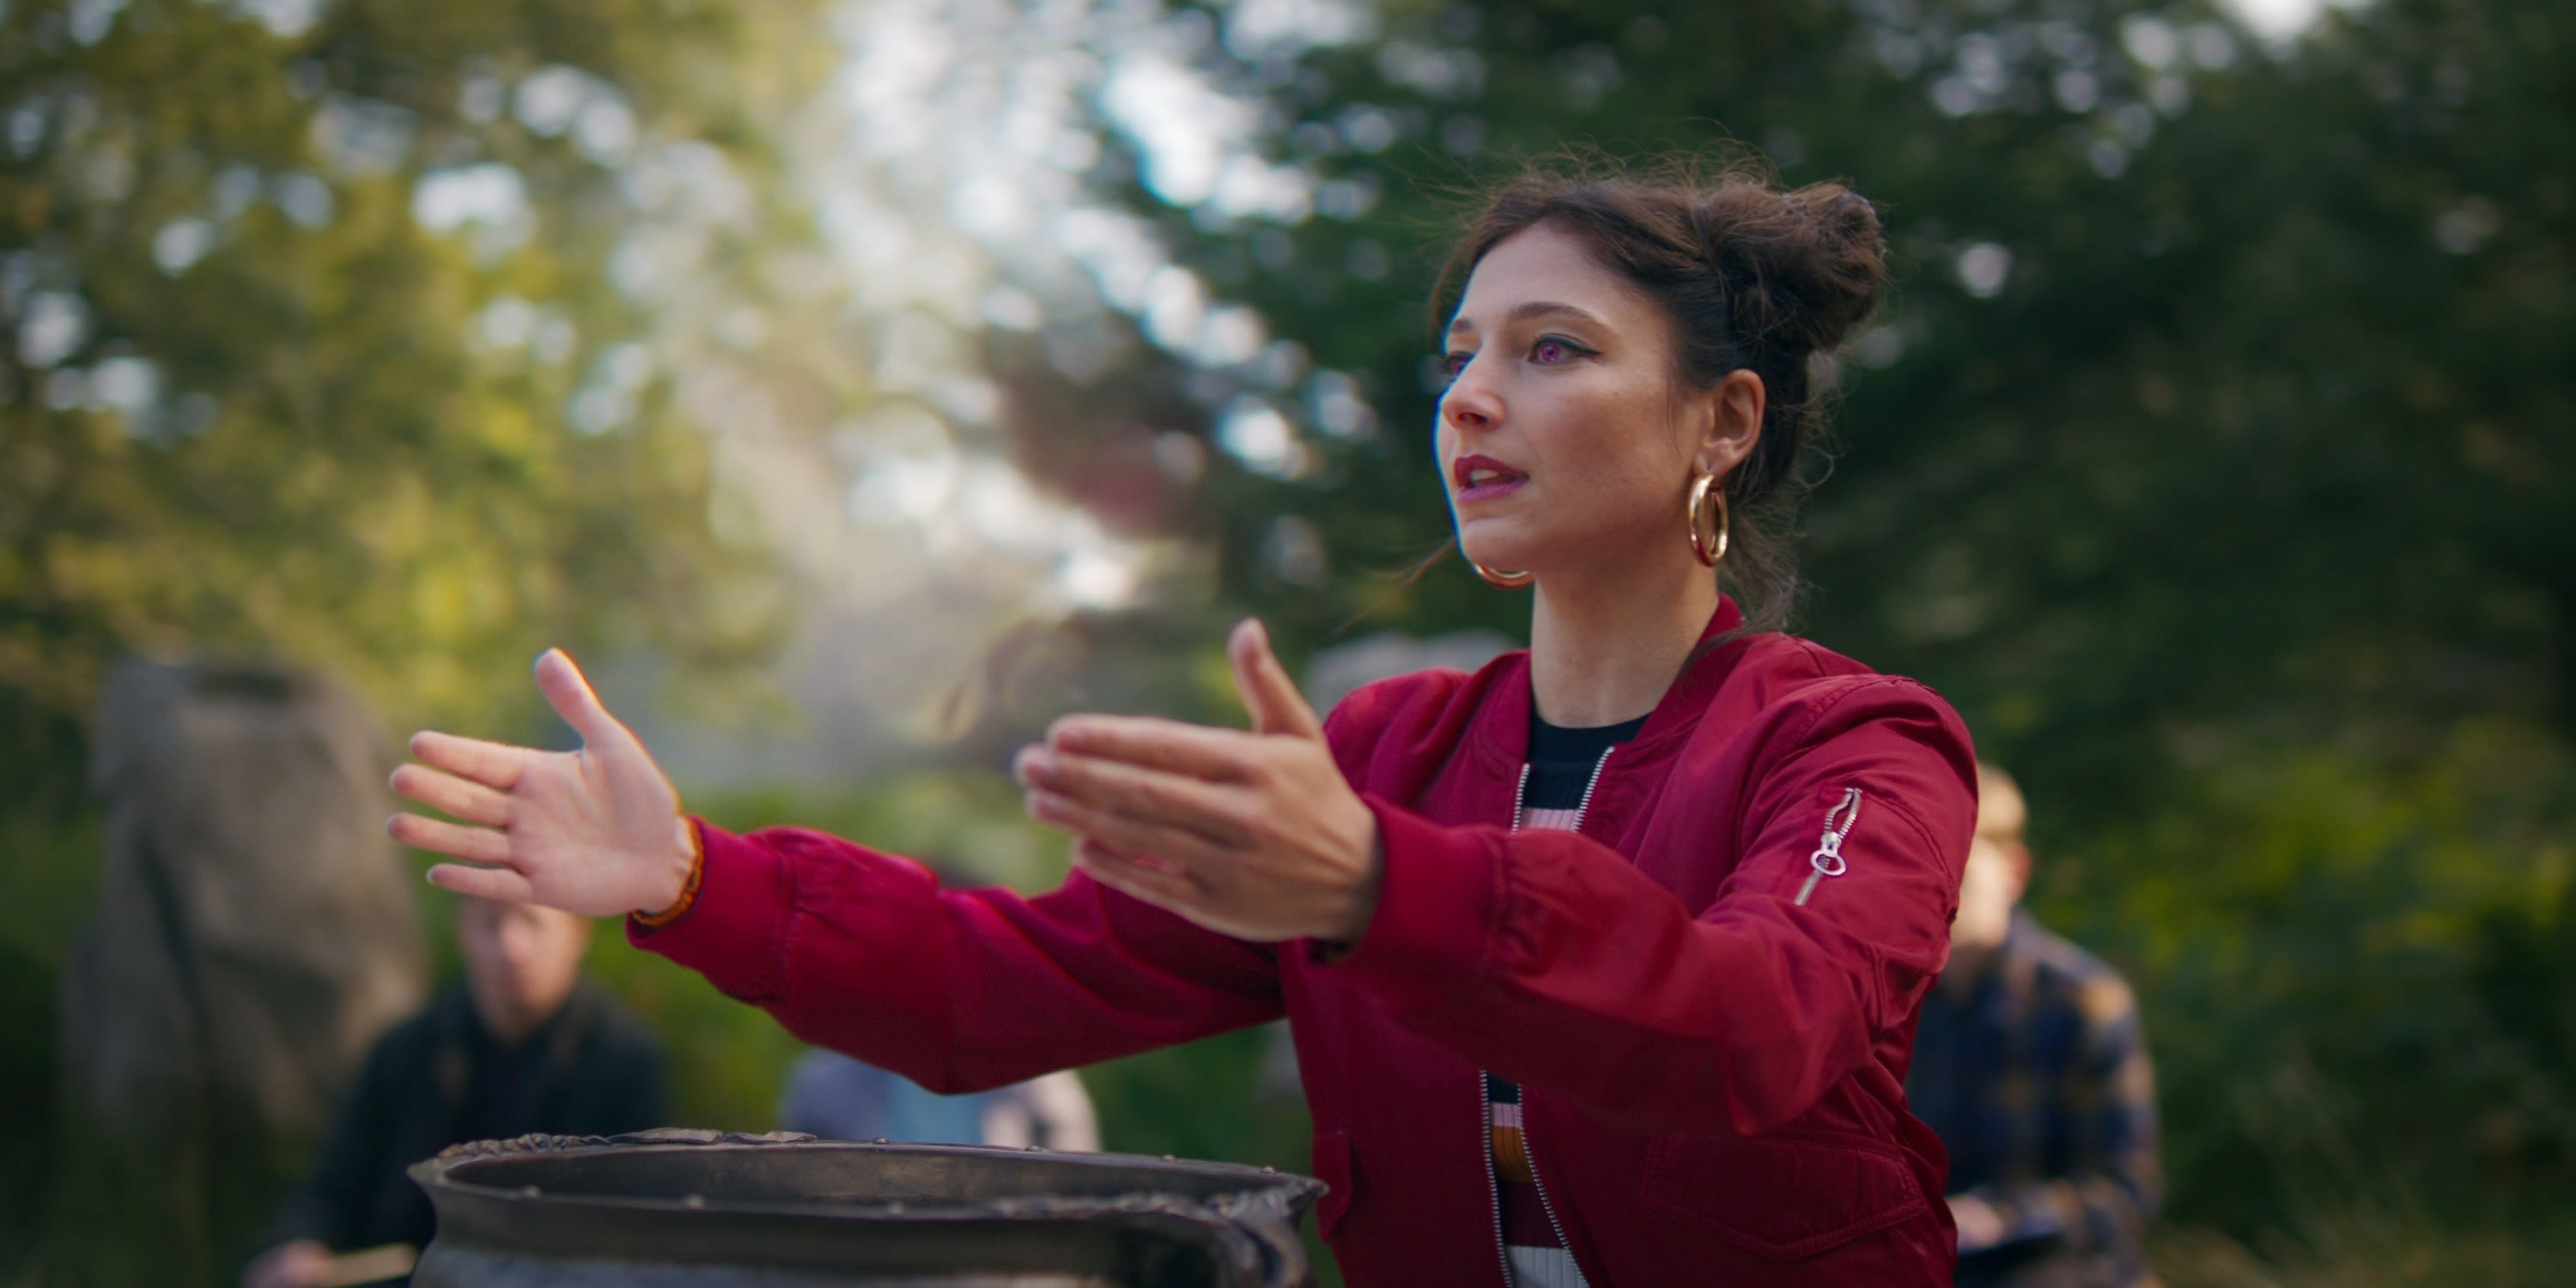 Musa, played by Elisha Applebaum, raising her arms in the forest